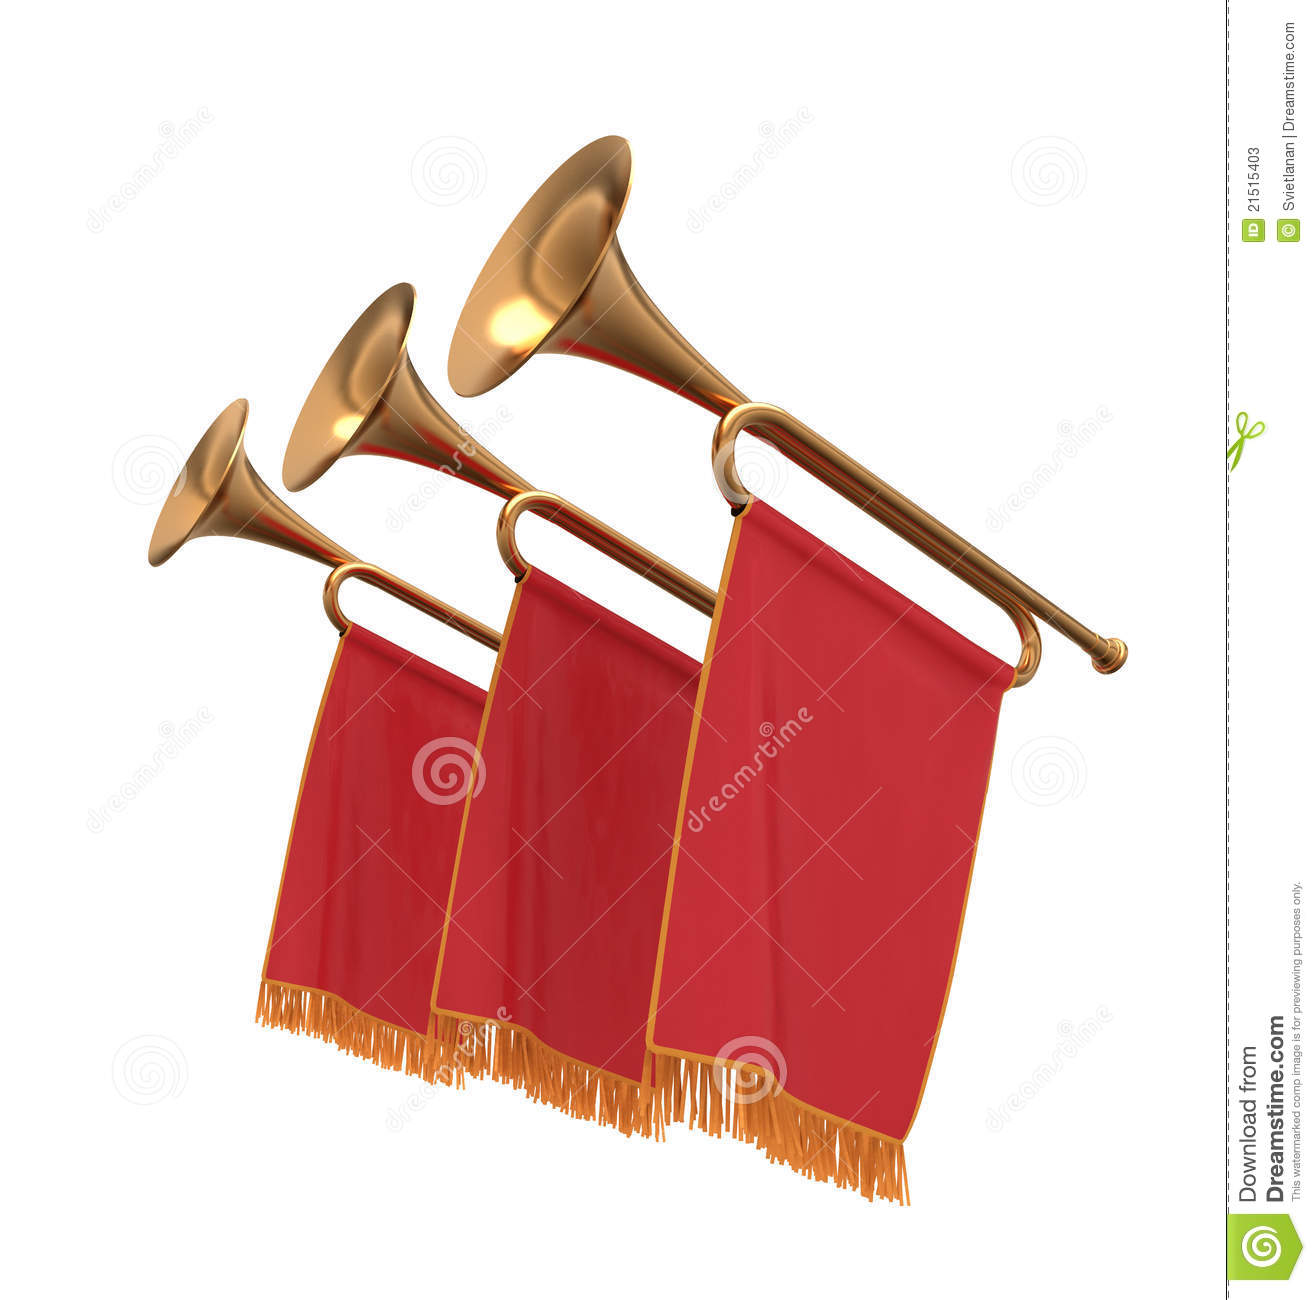 Trumpets stock illustrations three. Medieval clipart trumpet free library